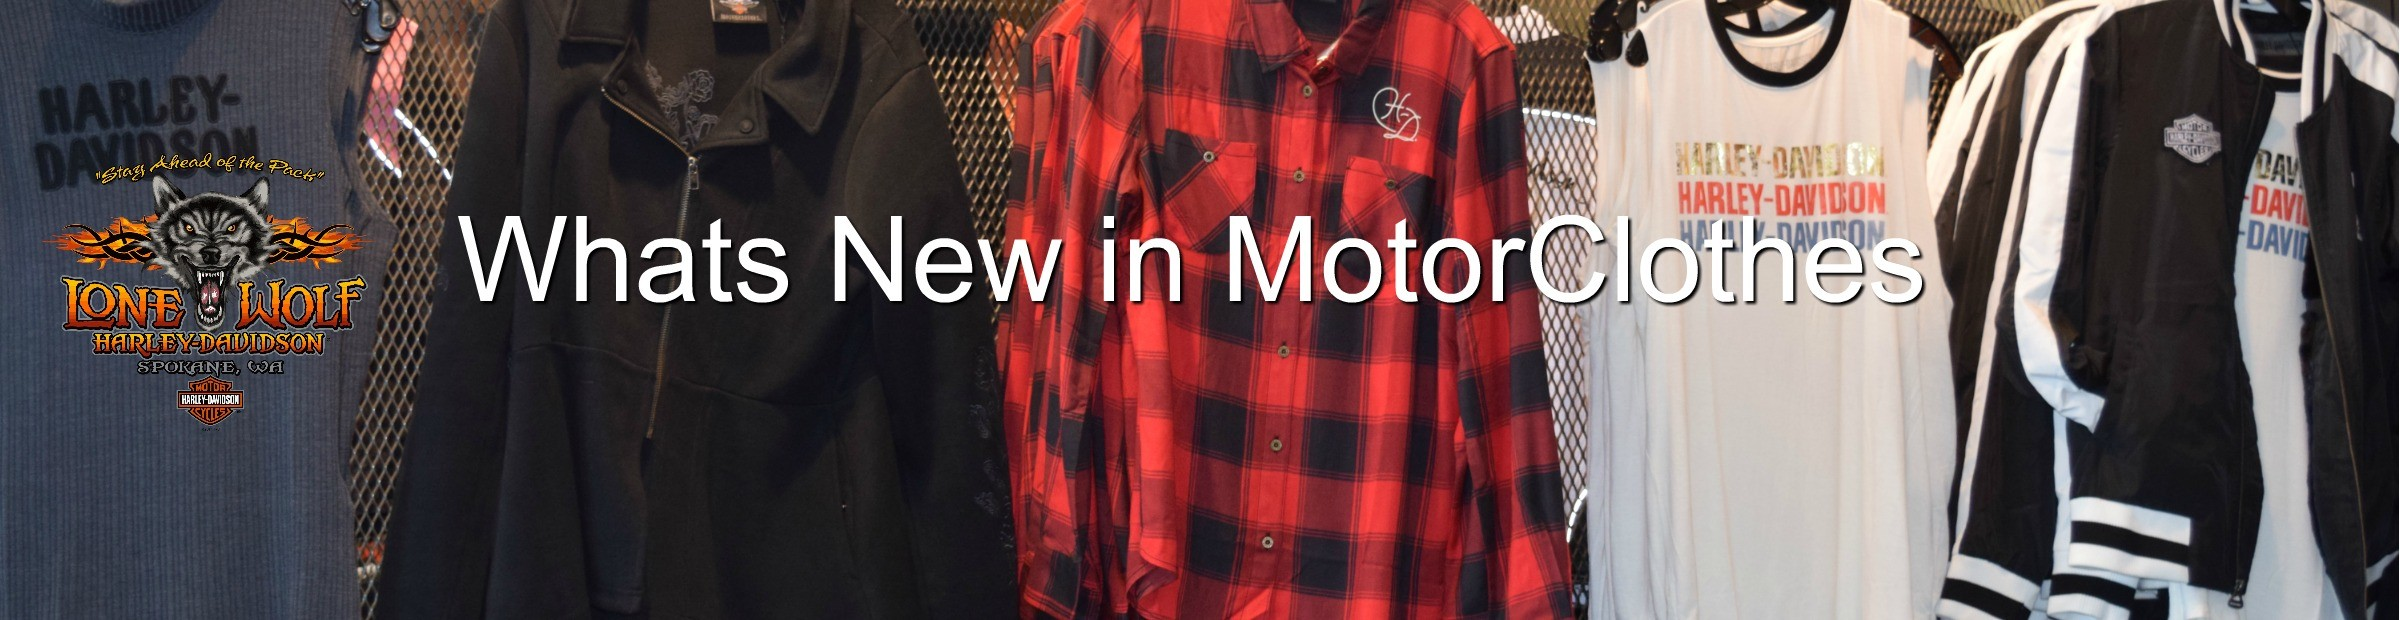 Whats new in MotorClothes